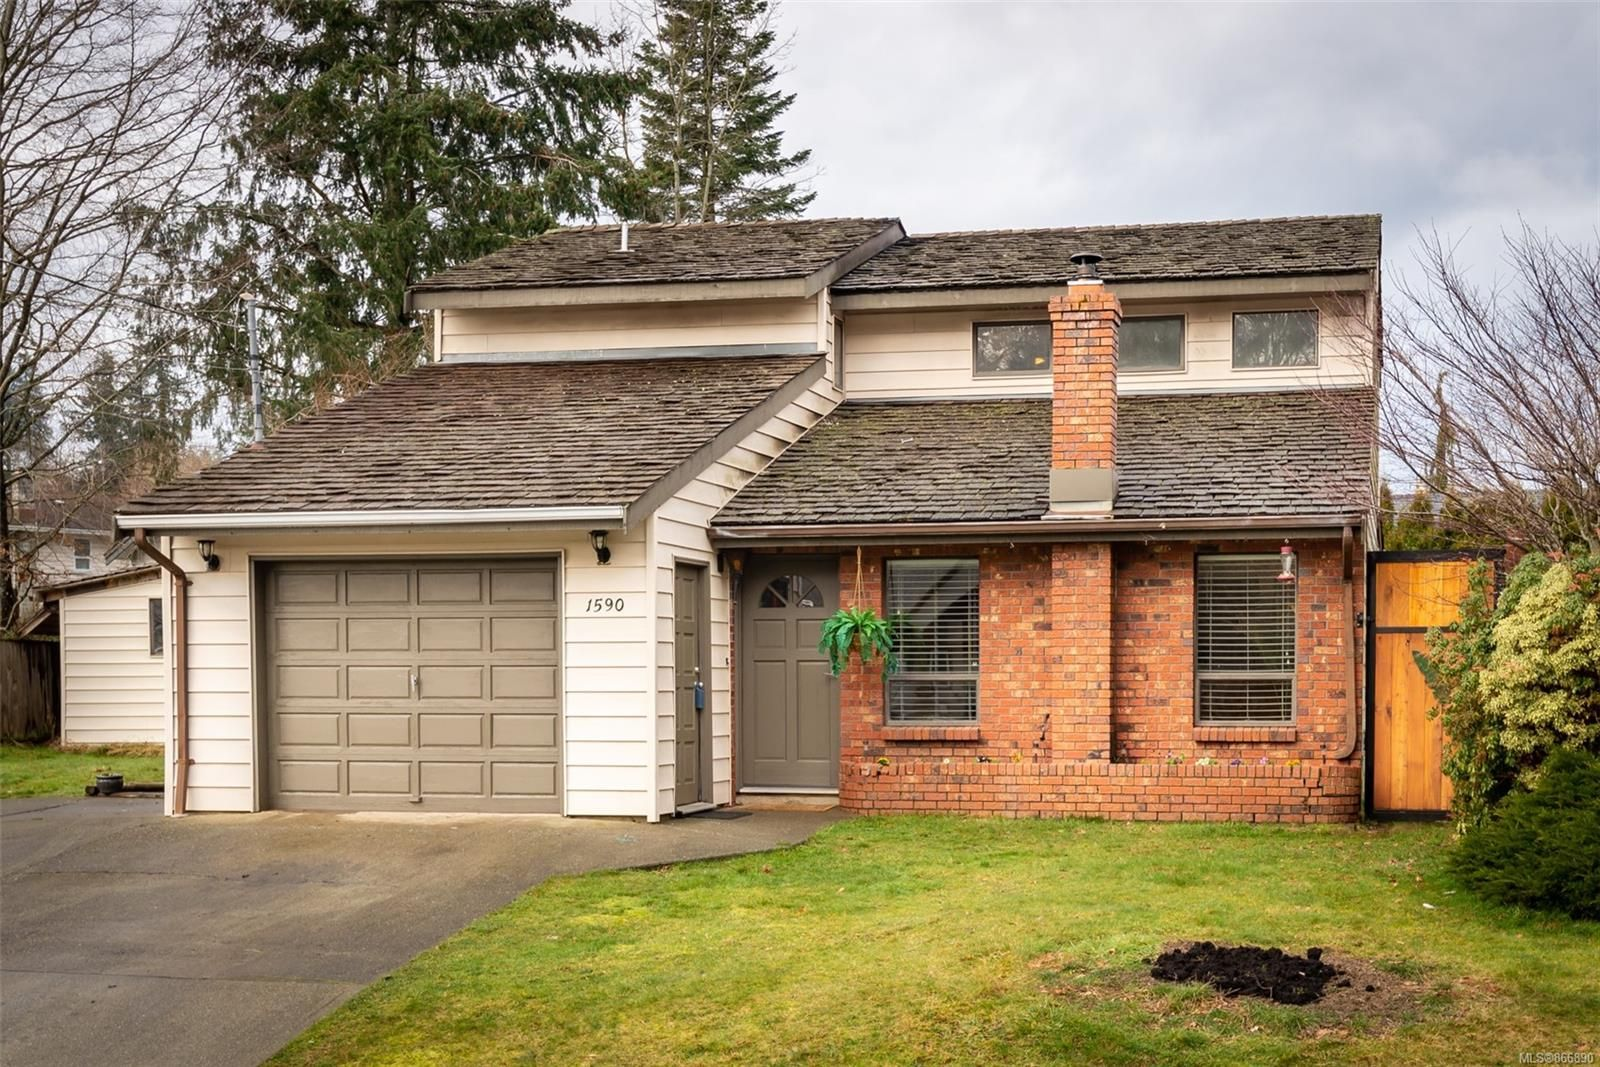 Main Photo: 1590 Juniper Dr in : CR Willow Point House for sale (Campbell River)  : MLS®# 866890